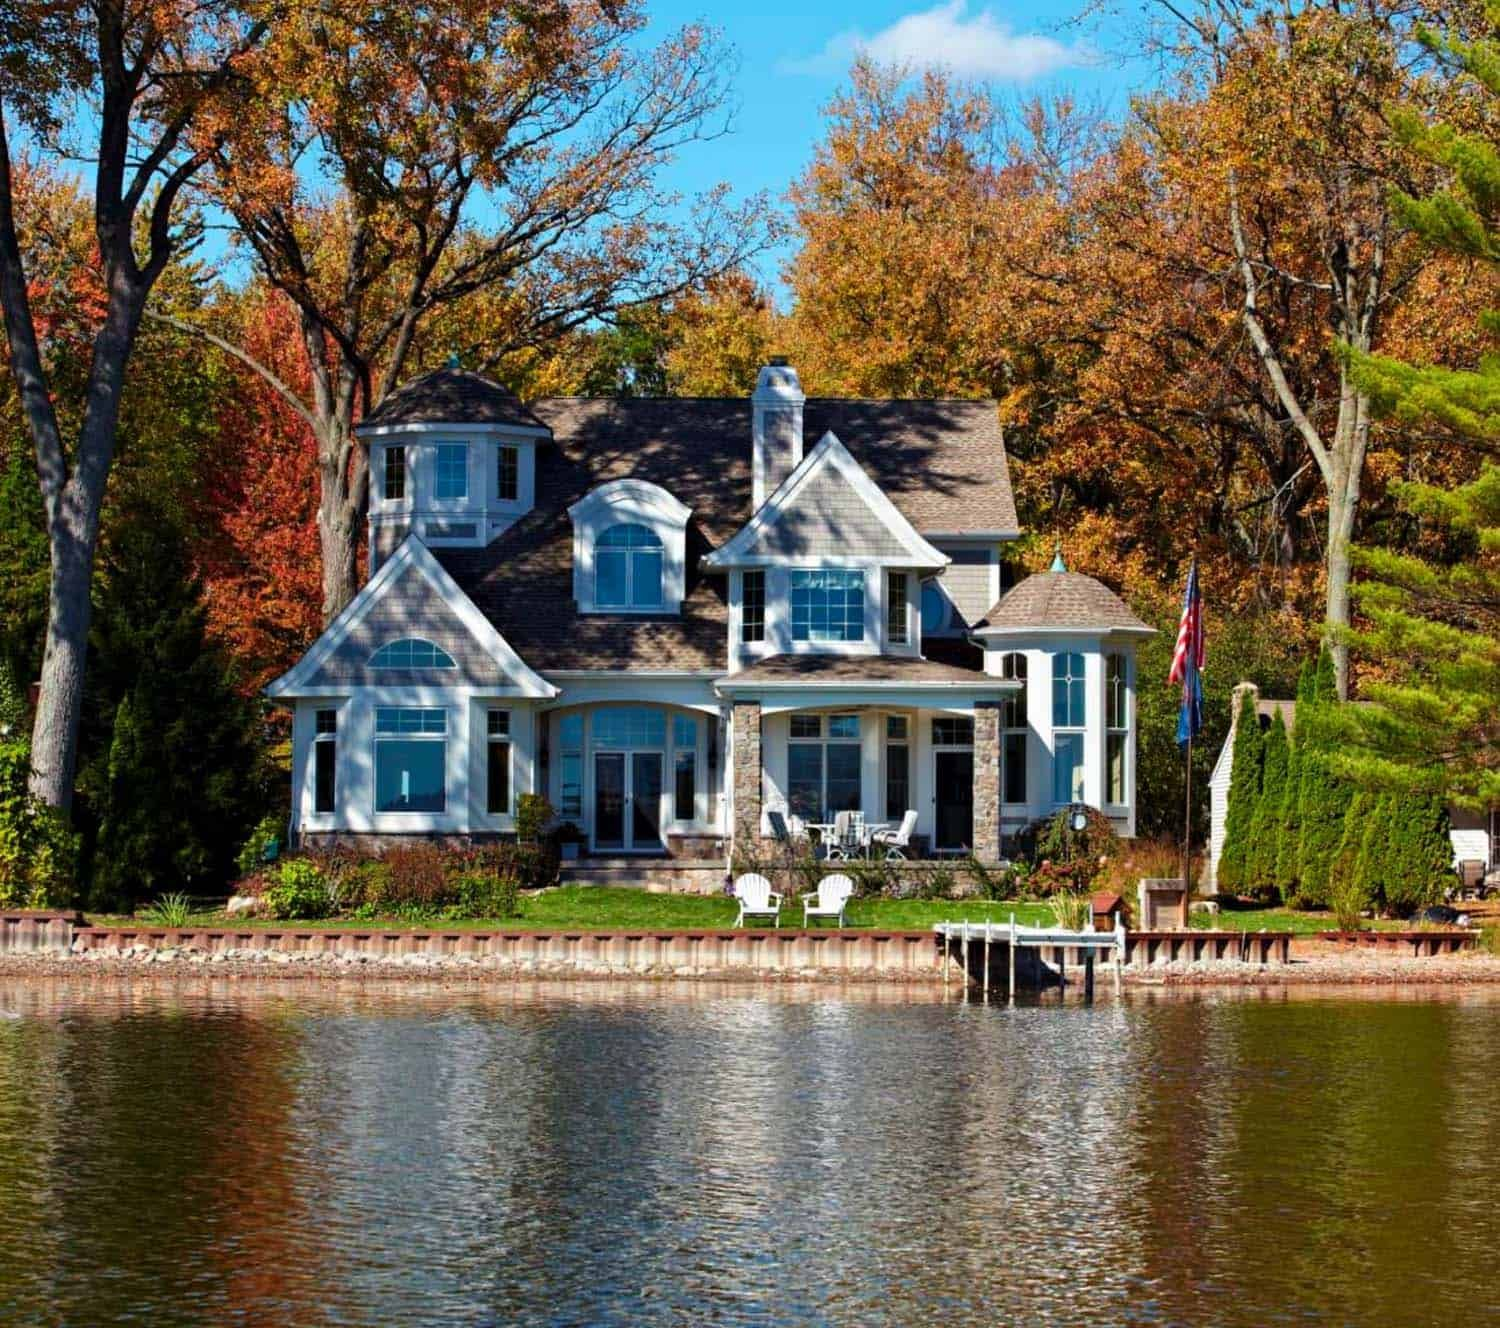 A Cape Cod Inspired Lake House Designed For Casual Living In Michigan Beautiful Houses Exterior Lake House My Dream Home